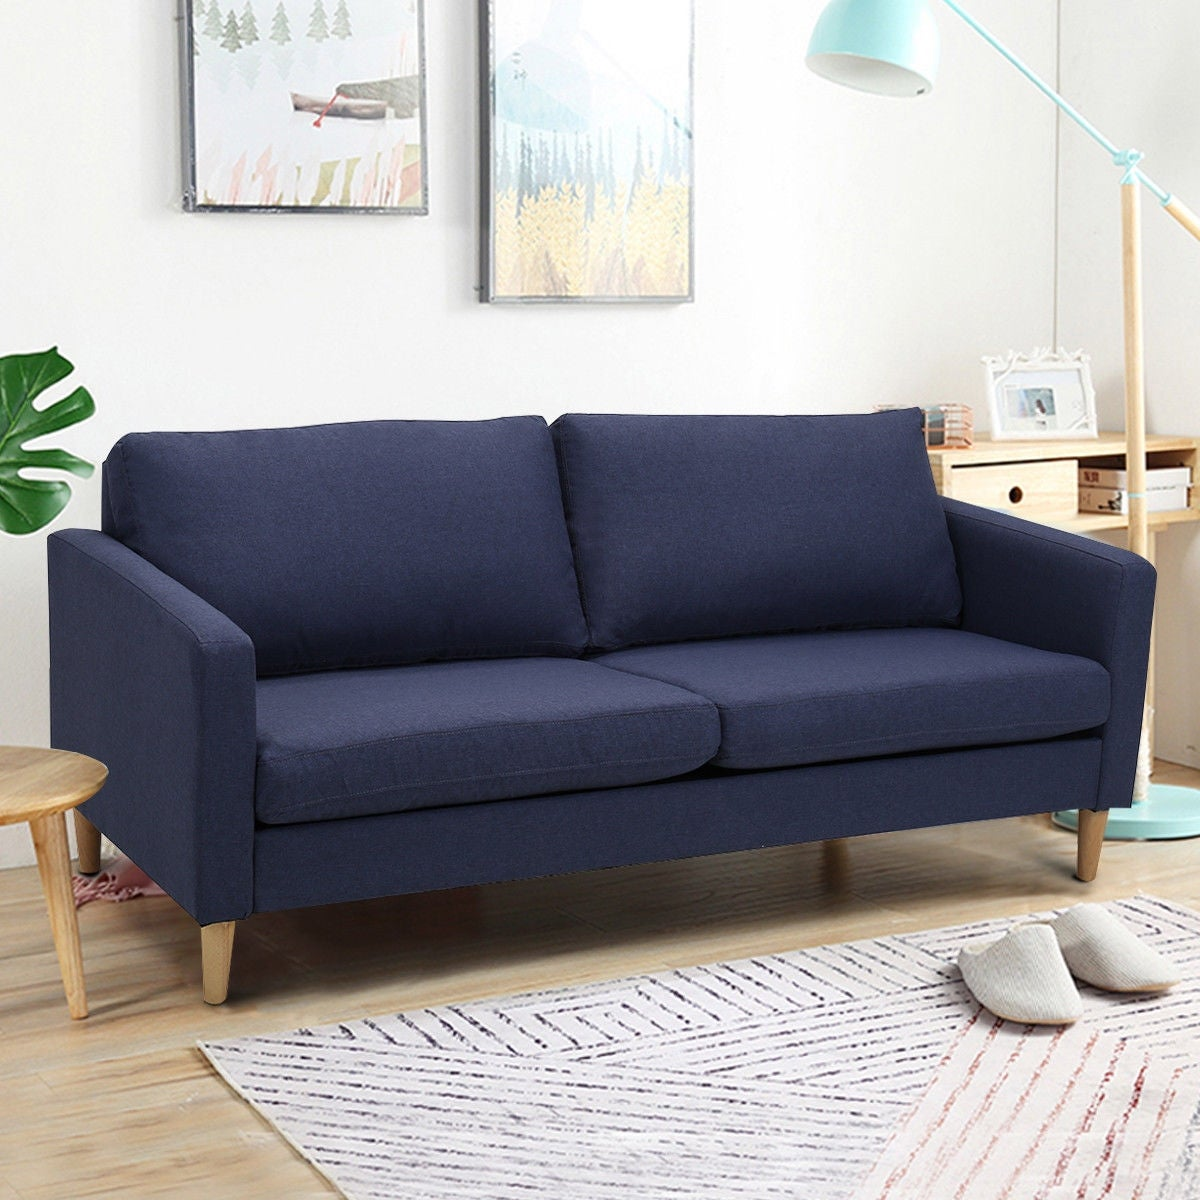 Costway Modern Fabric Couch Sofa